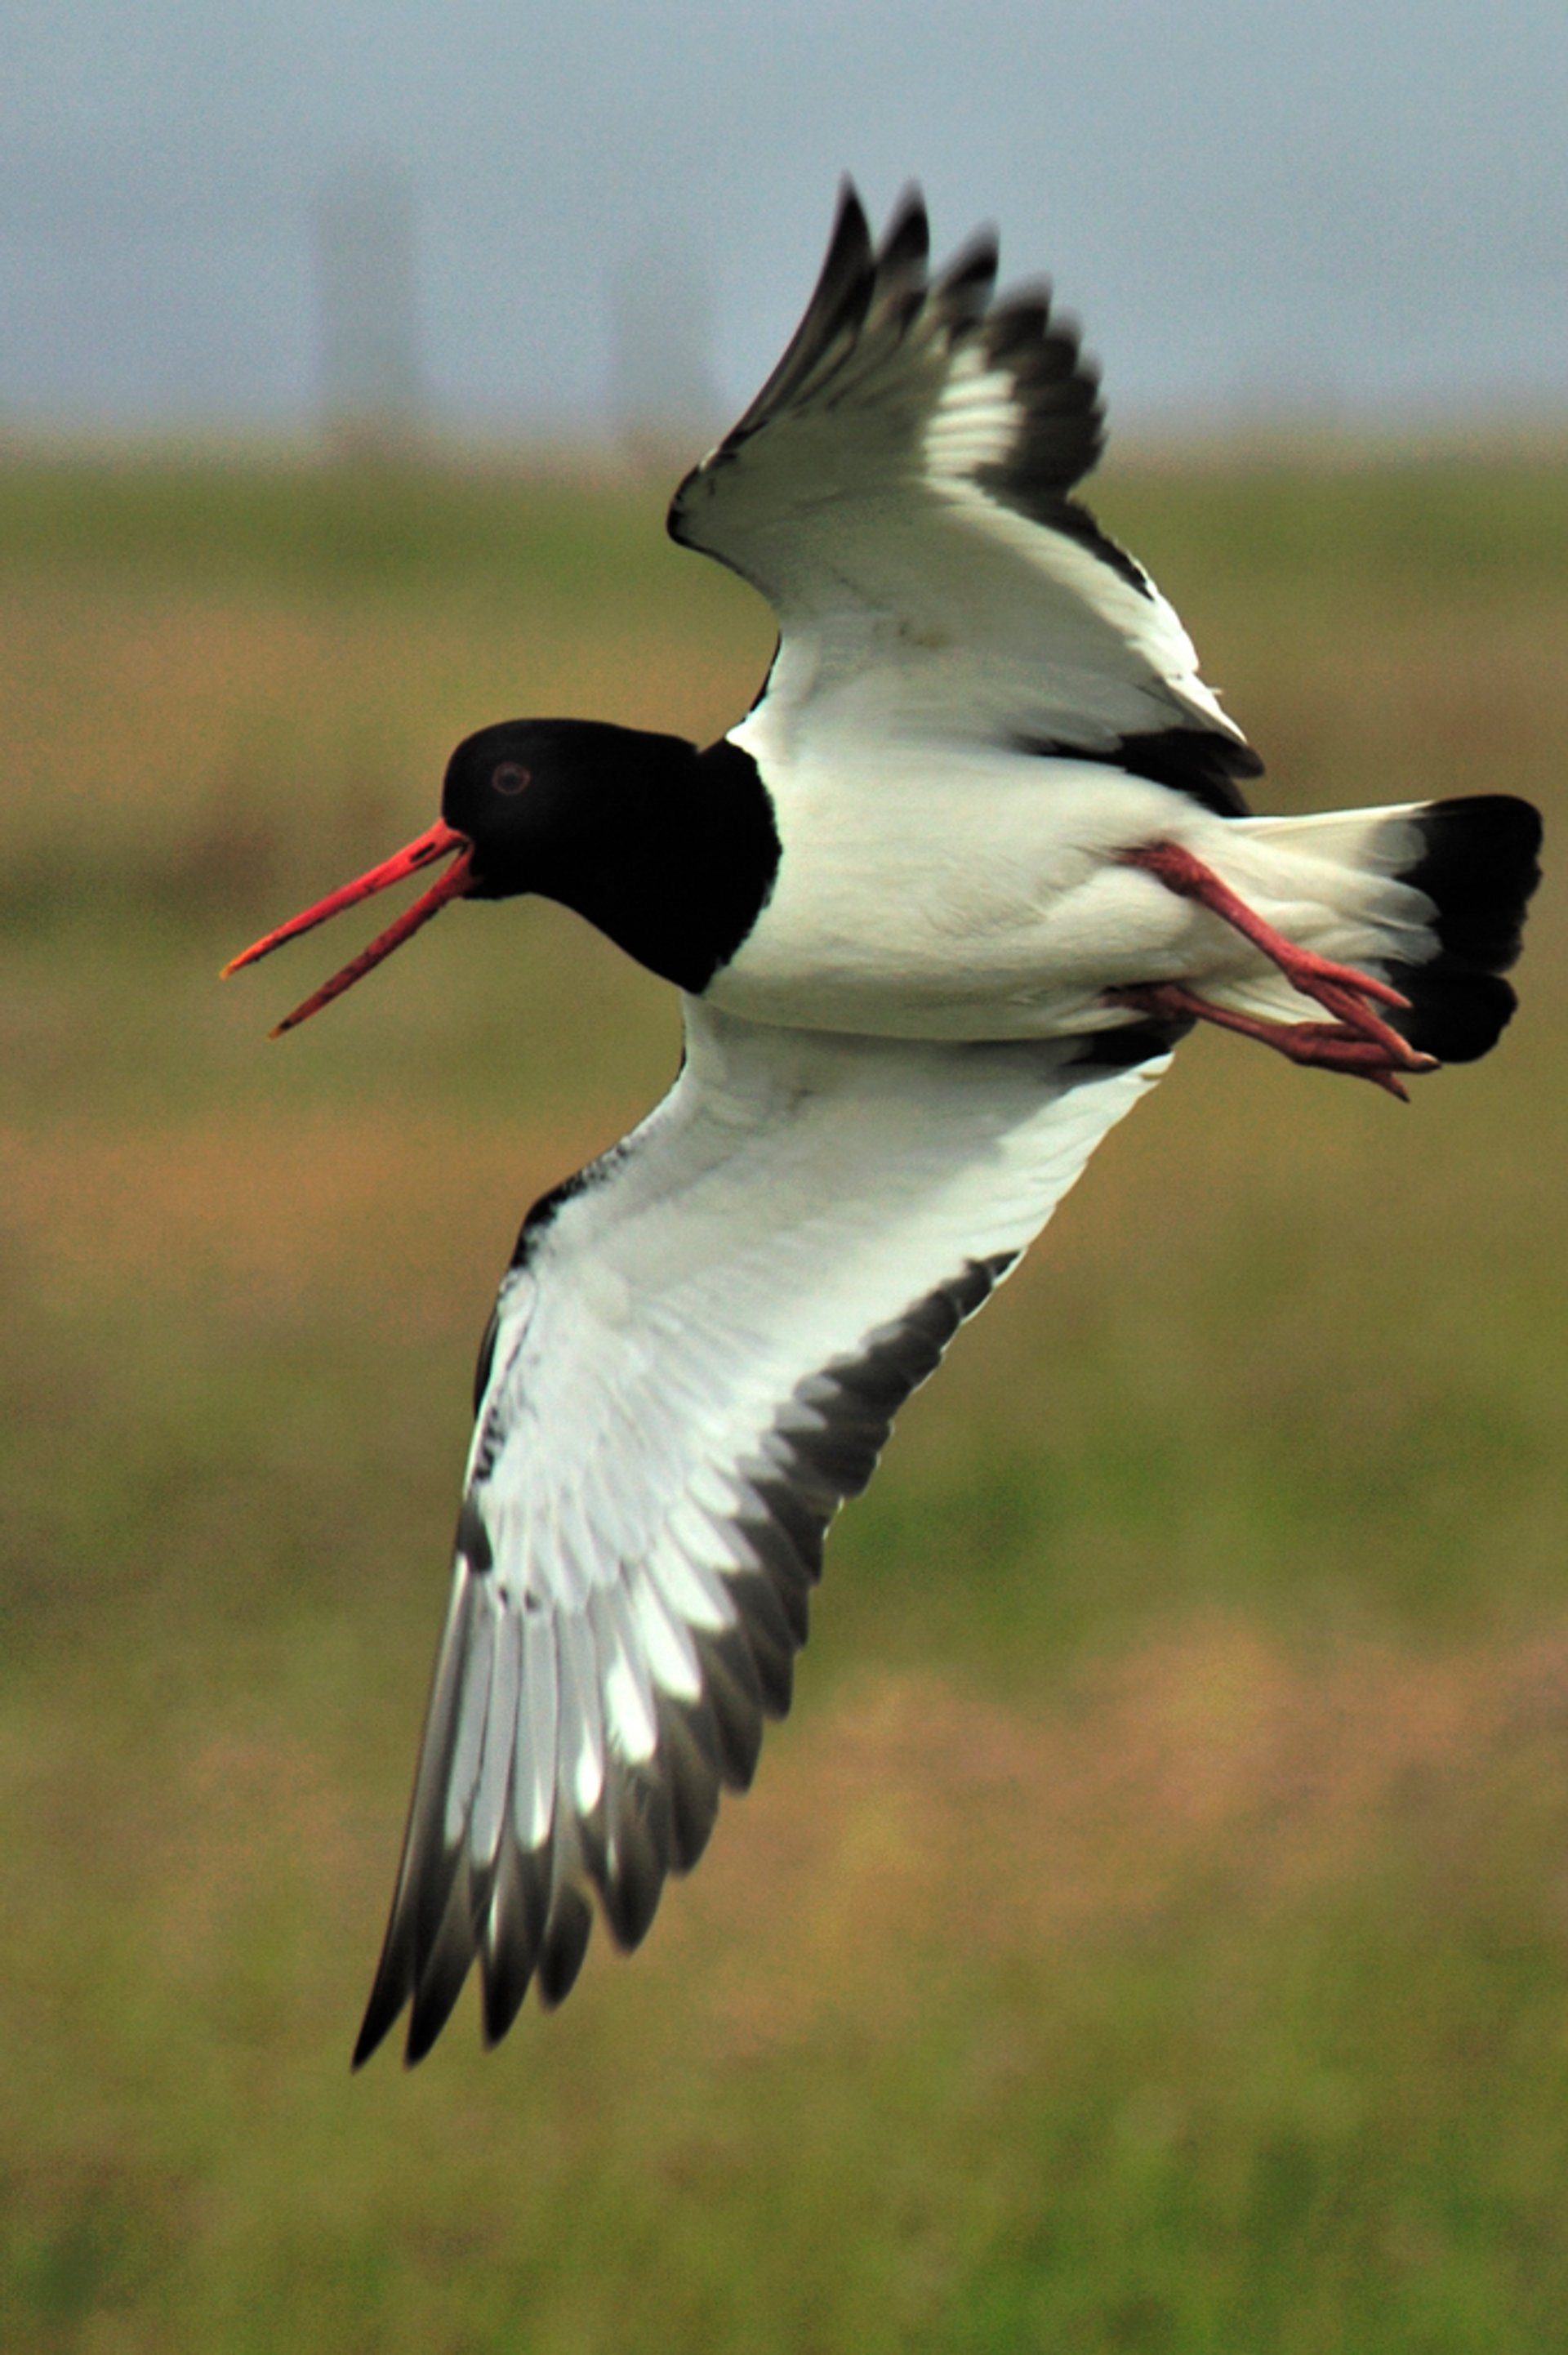 Grækarismessa: The Arrival of the Oyster-Catchers in Faroe Islands - Best Season